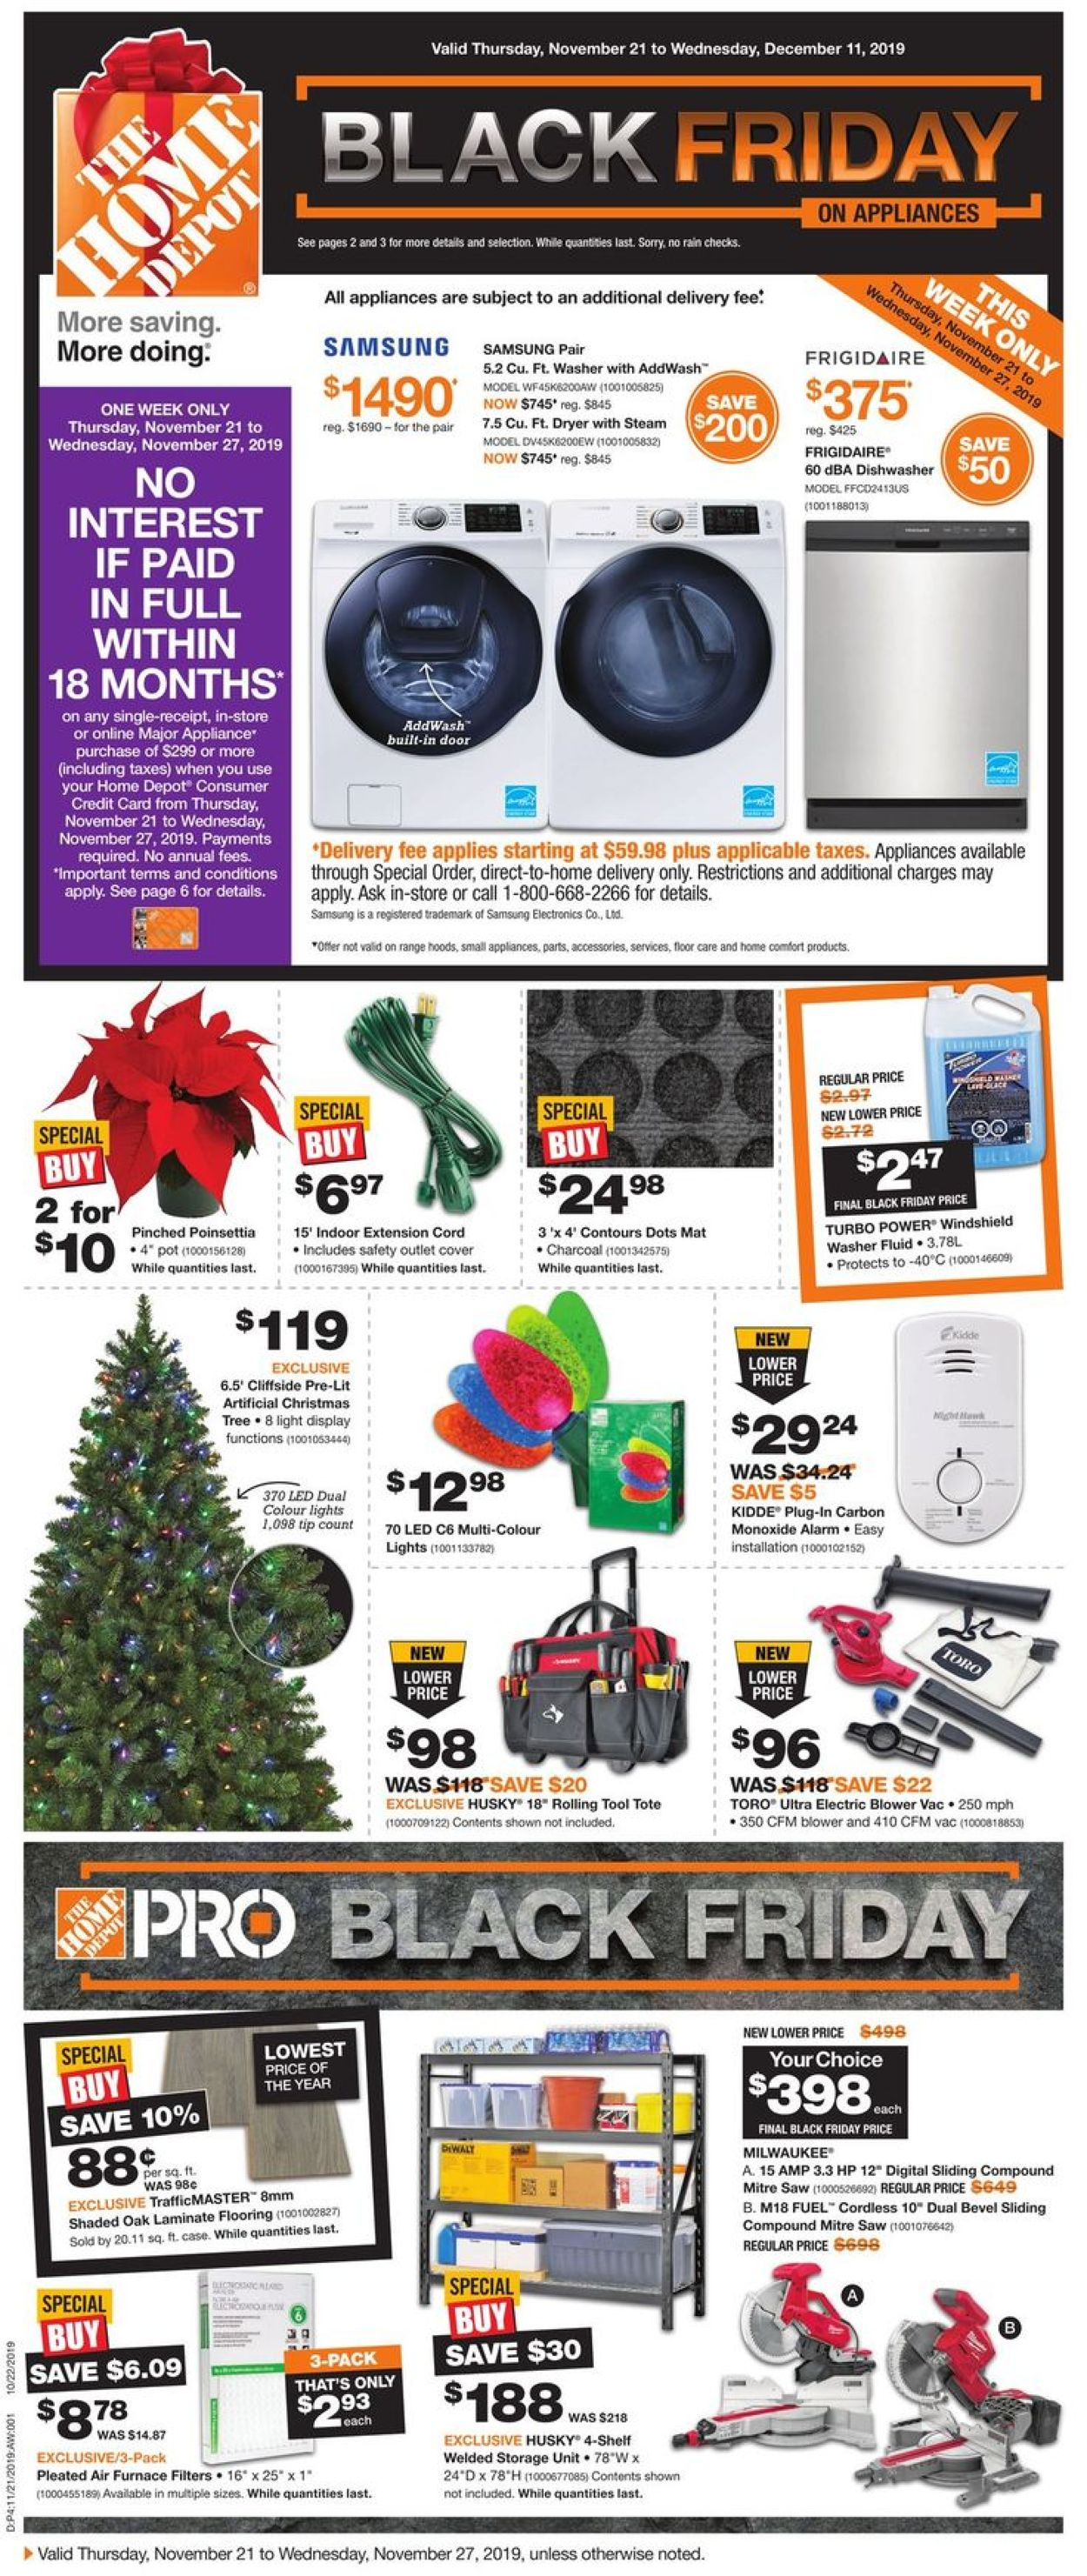 Home Depot BLACK FRIDAY FLYER 2019